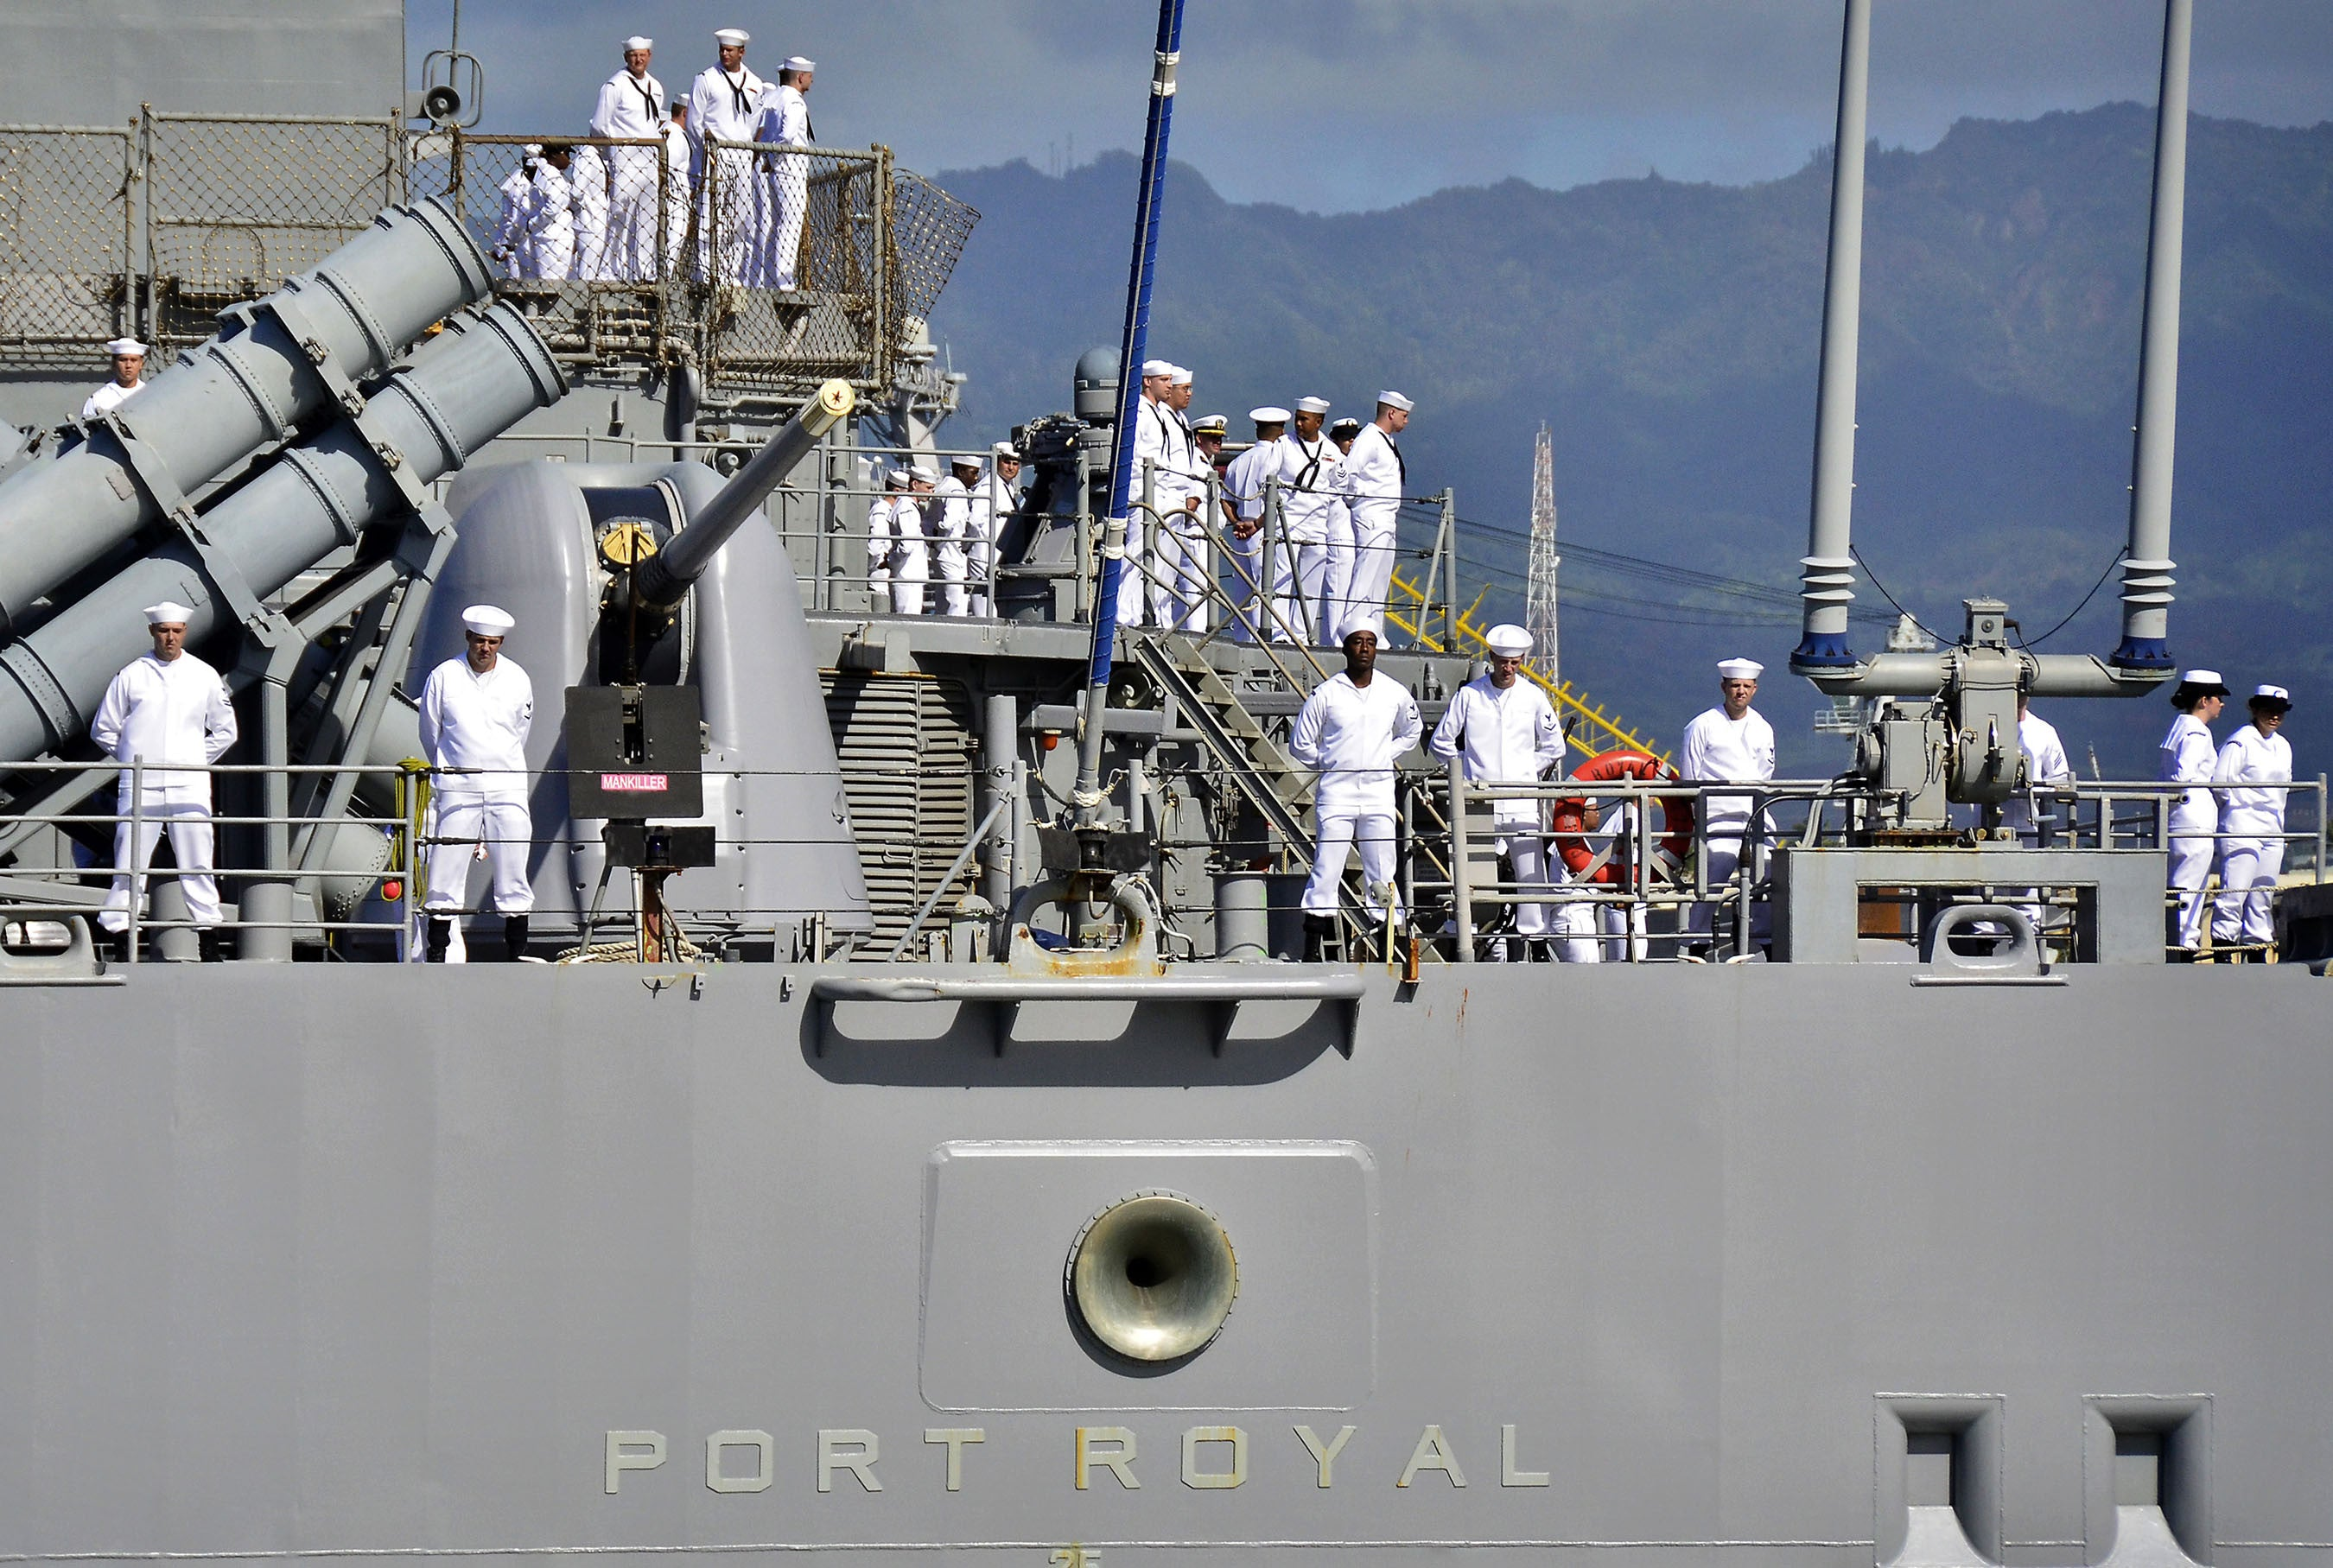 "USS Port Royal CG-73 PEARL HARBOR (June 24, 2011) - 4"" x 6"" Photograph"